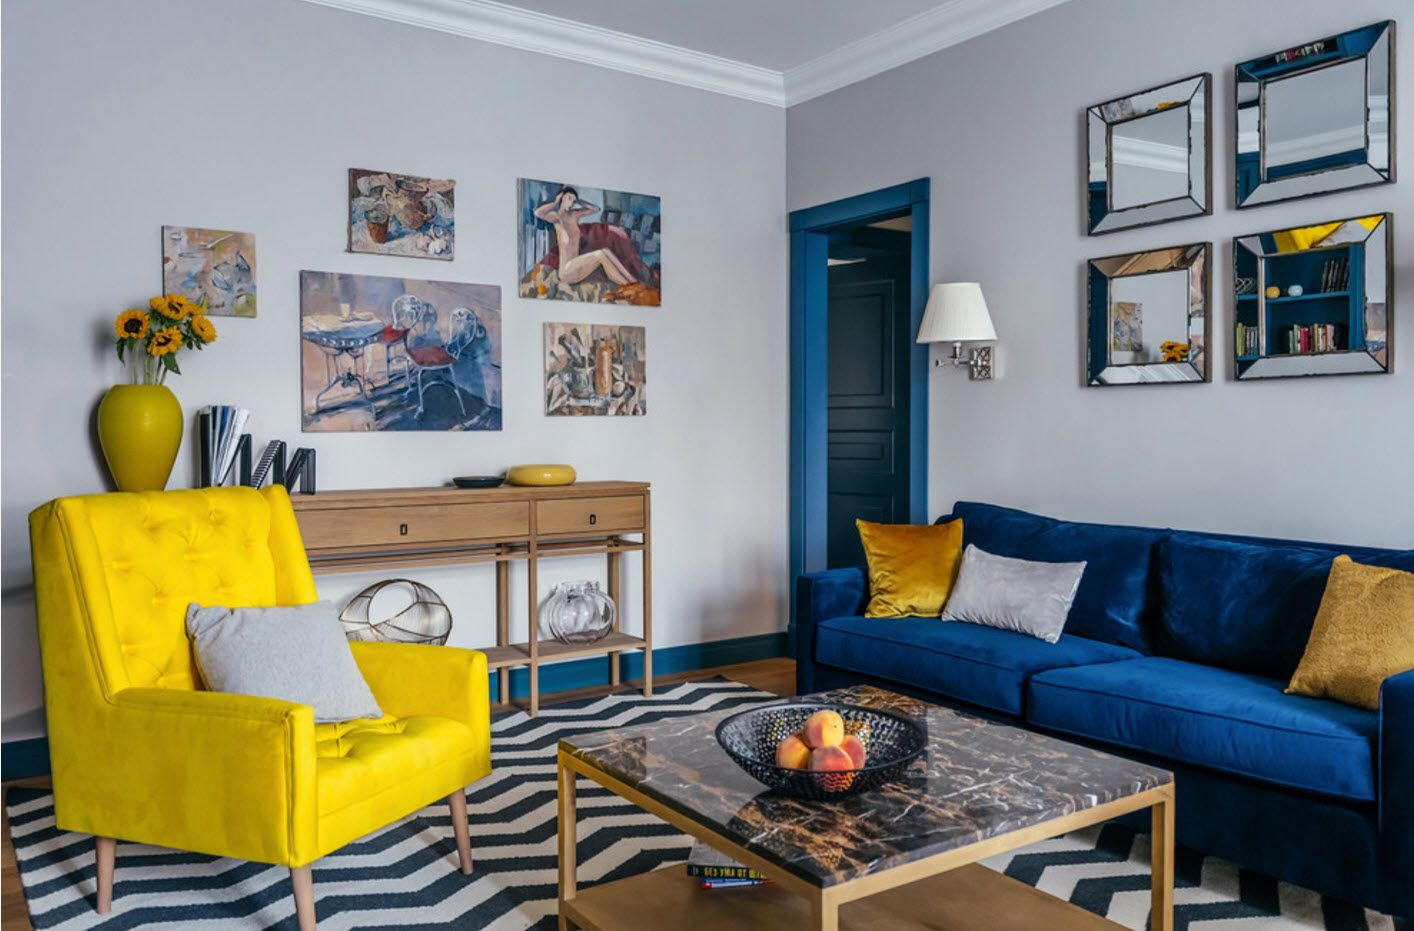 Affable modern interior decoration of the sitting room